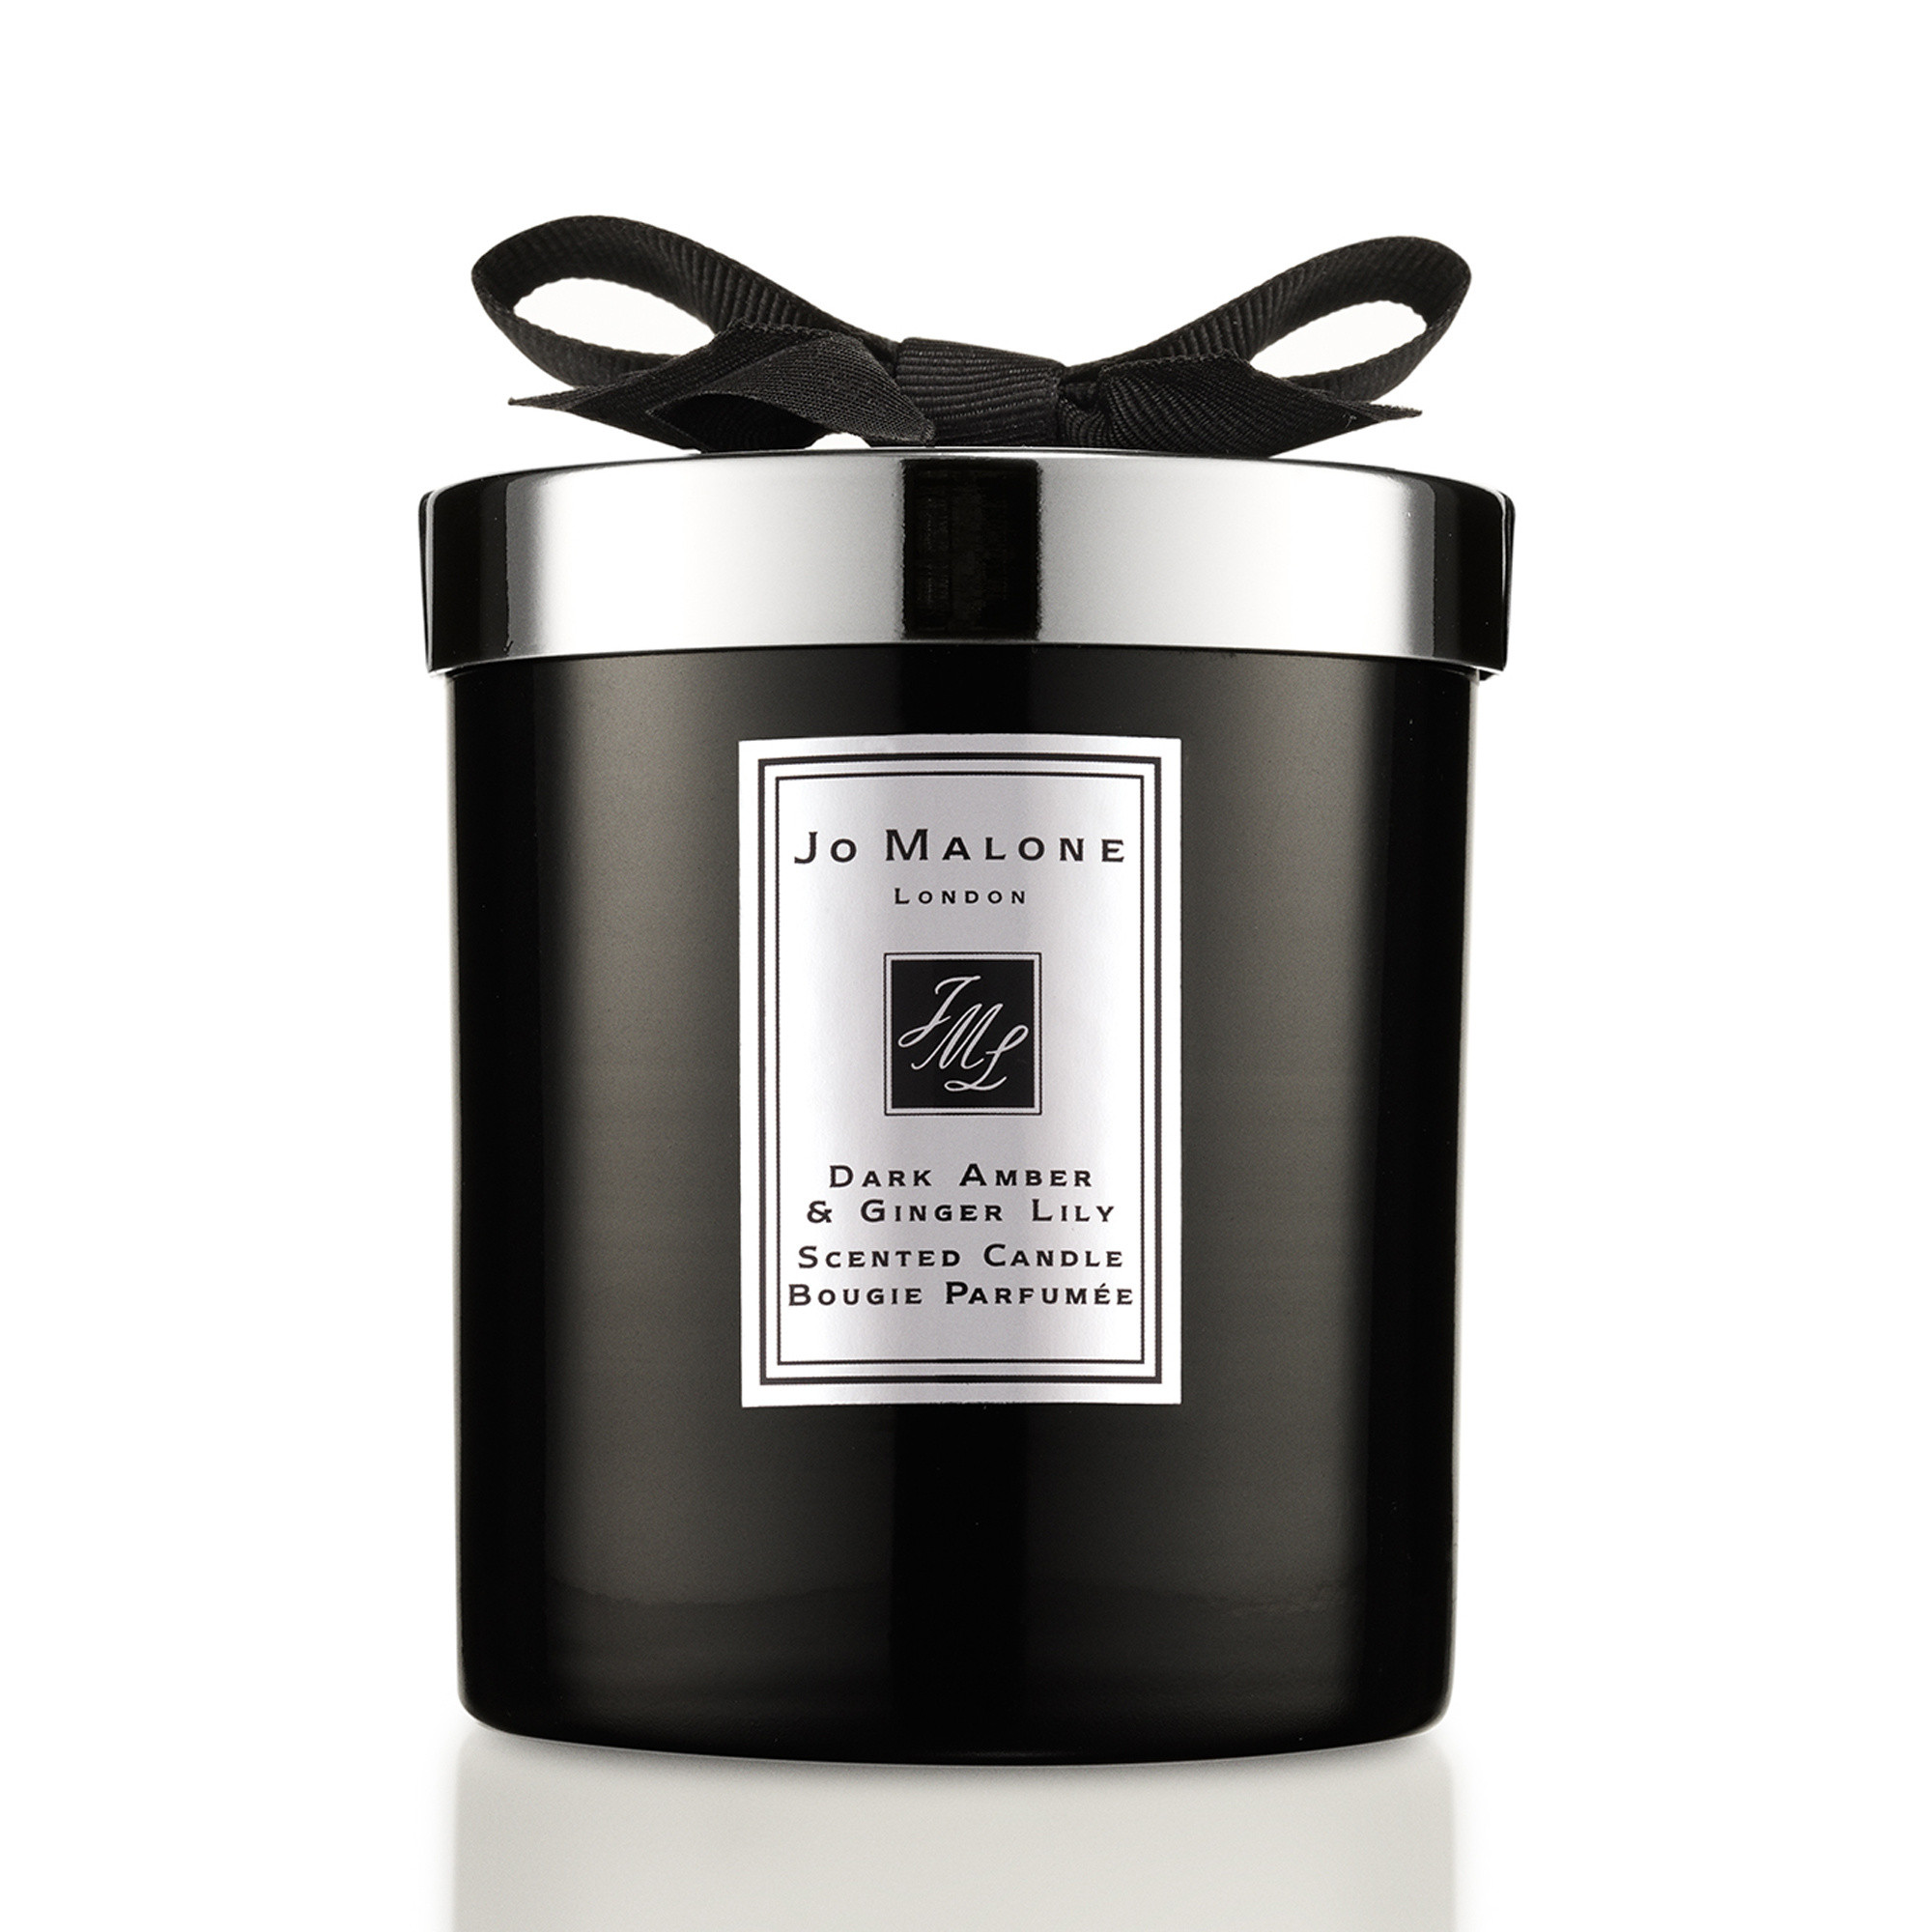 Jo Malone London dark amber & ginger lily home candle intense 200 g, Nero, large image number 0